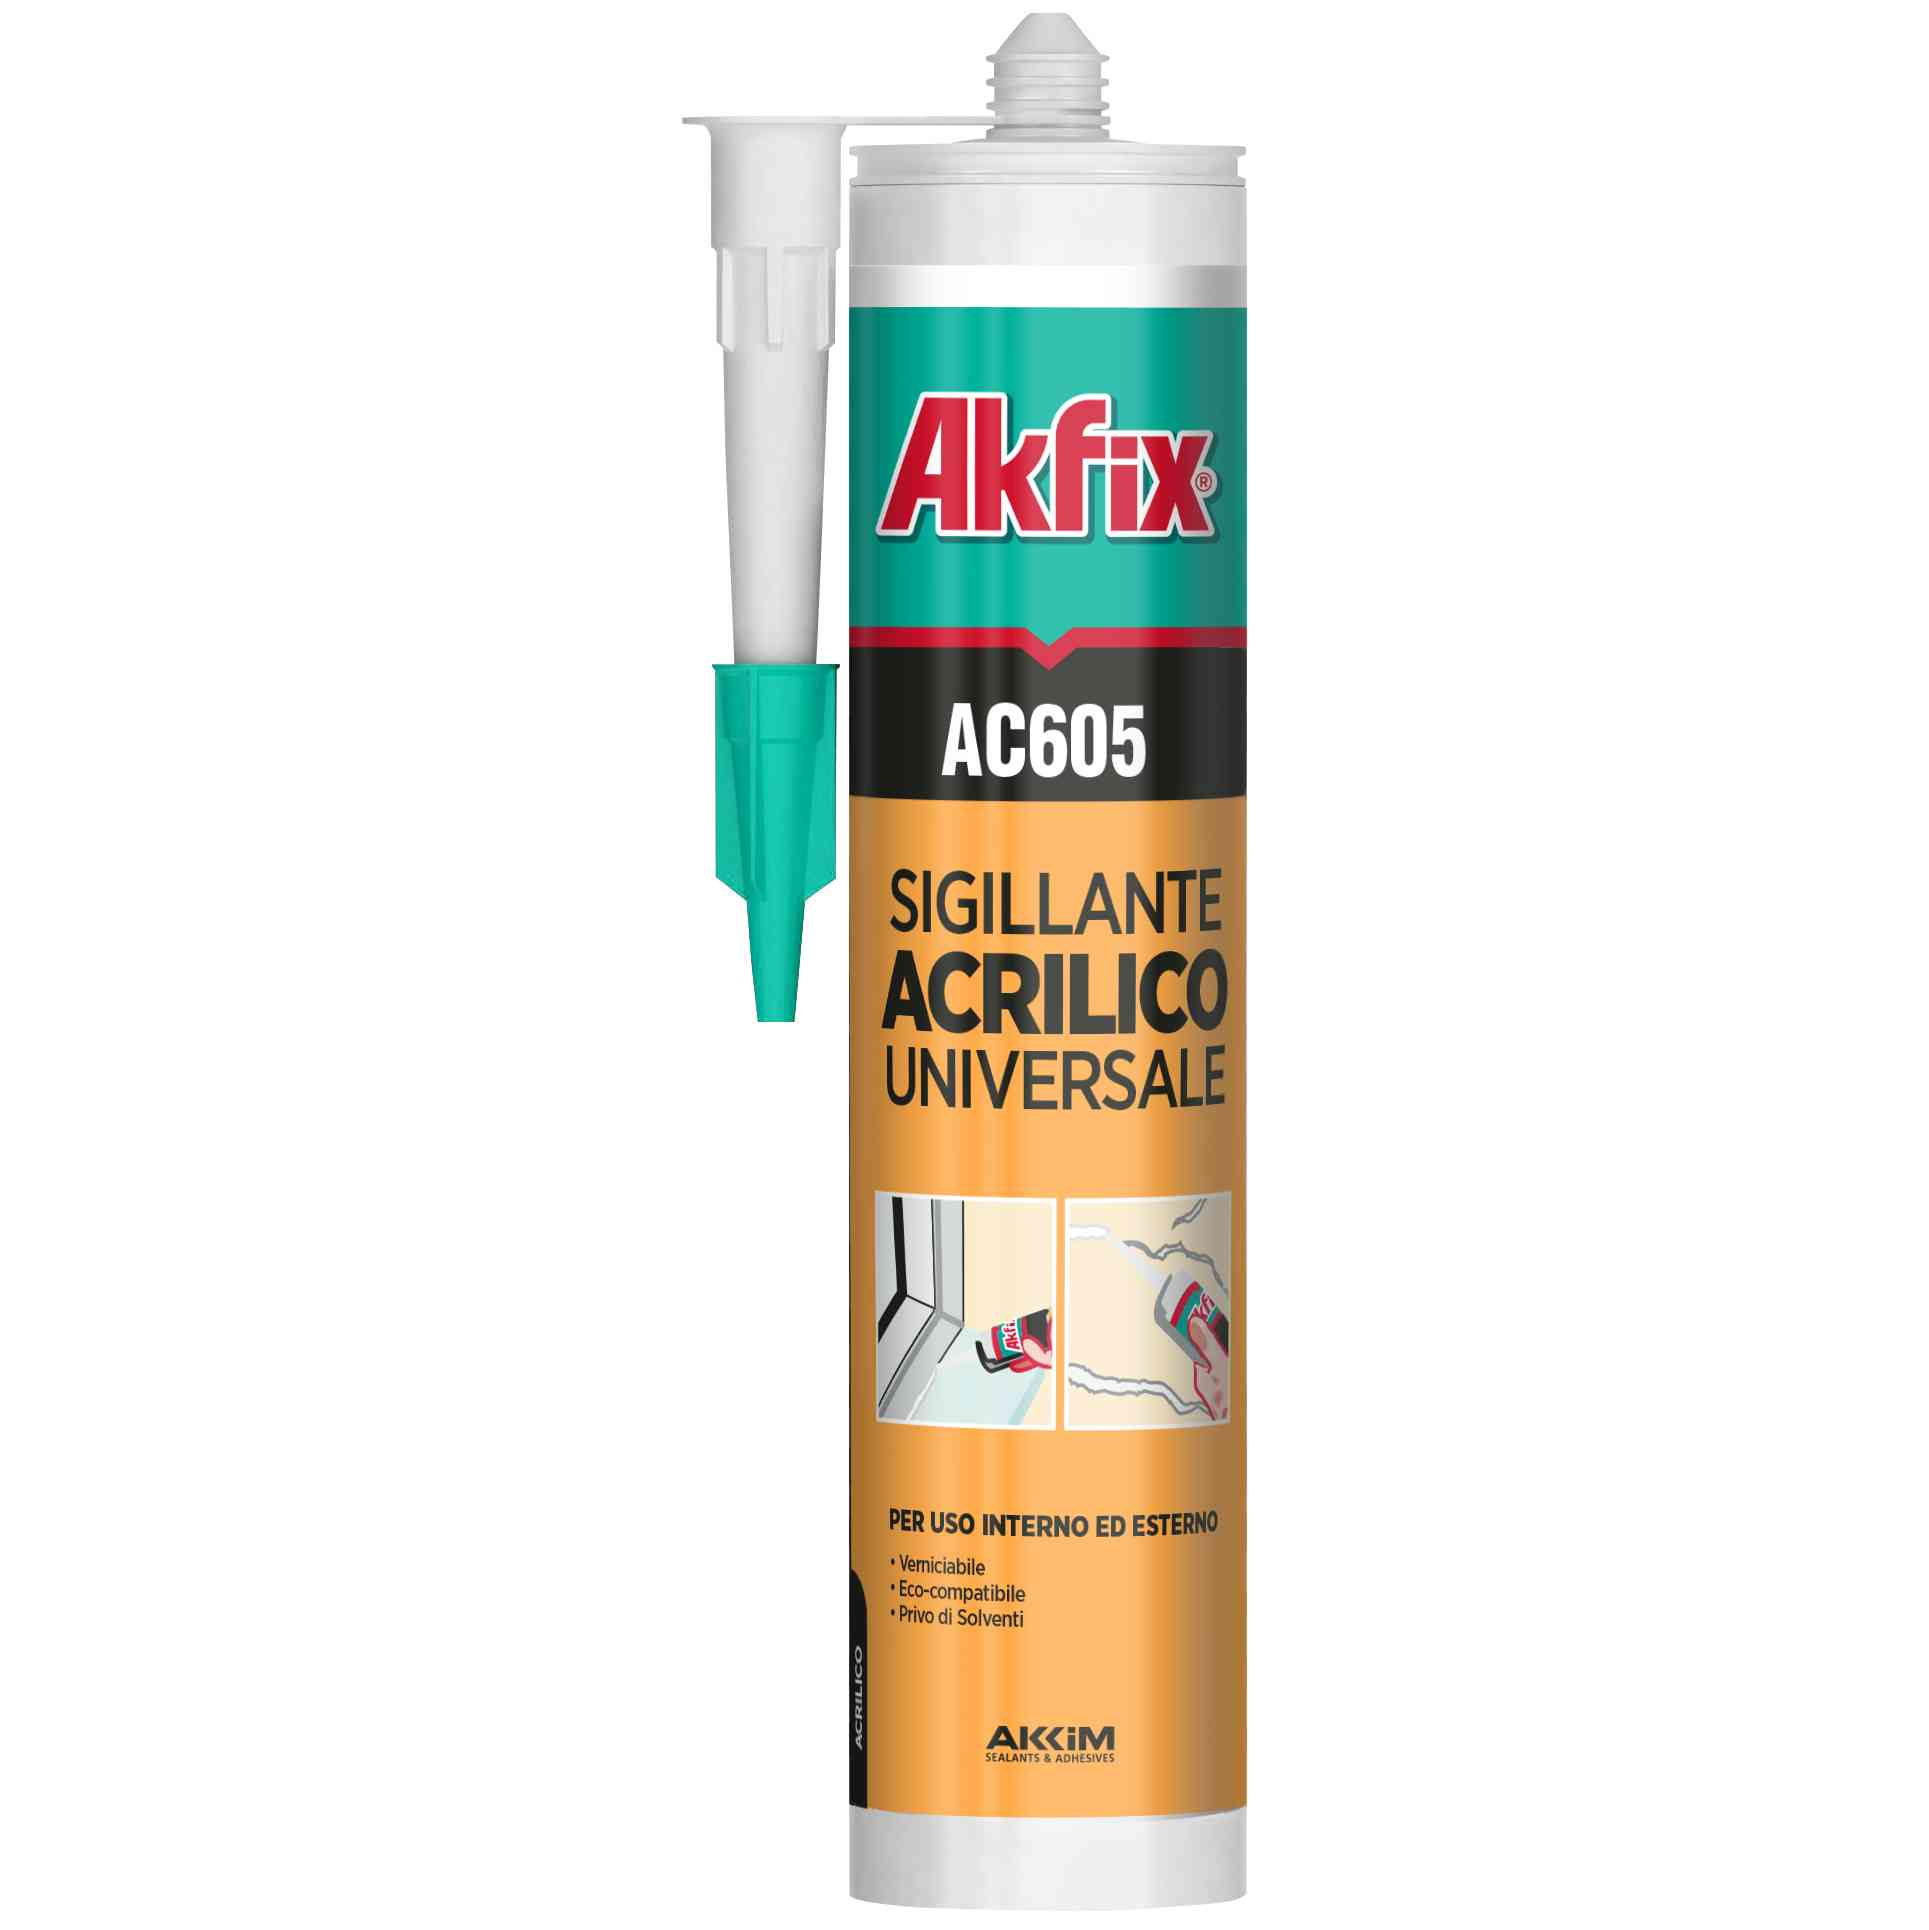 24 PZ Di AKFIX CARTUCCIA SILIC.ACRIL. AC605 B.CO 310ML